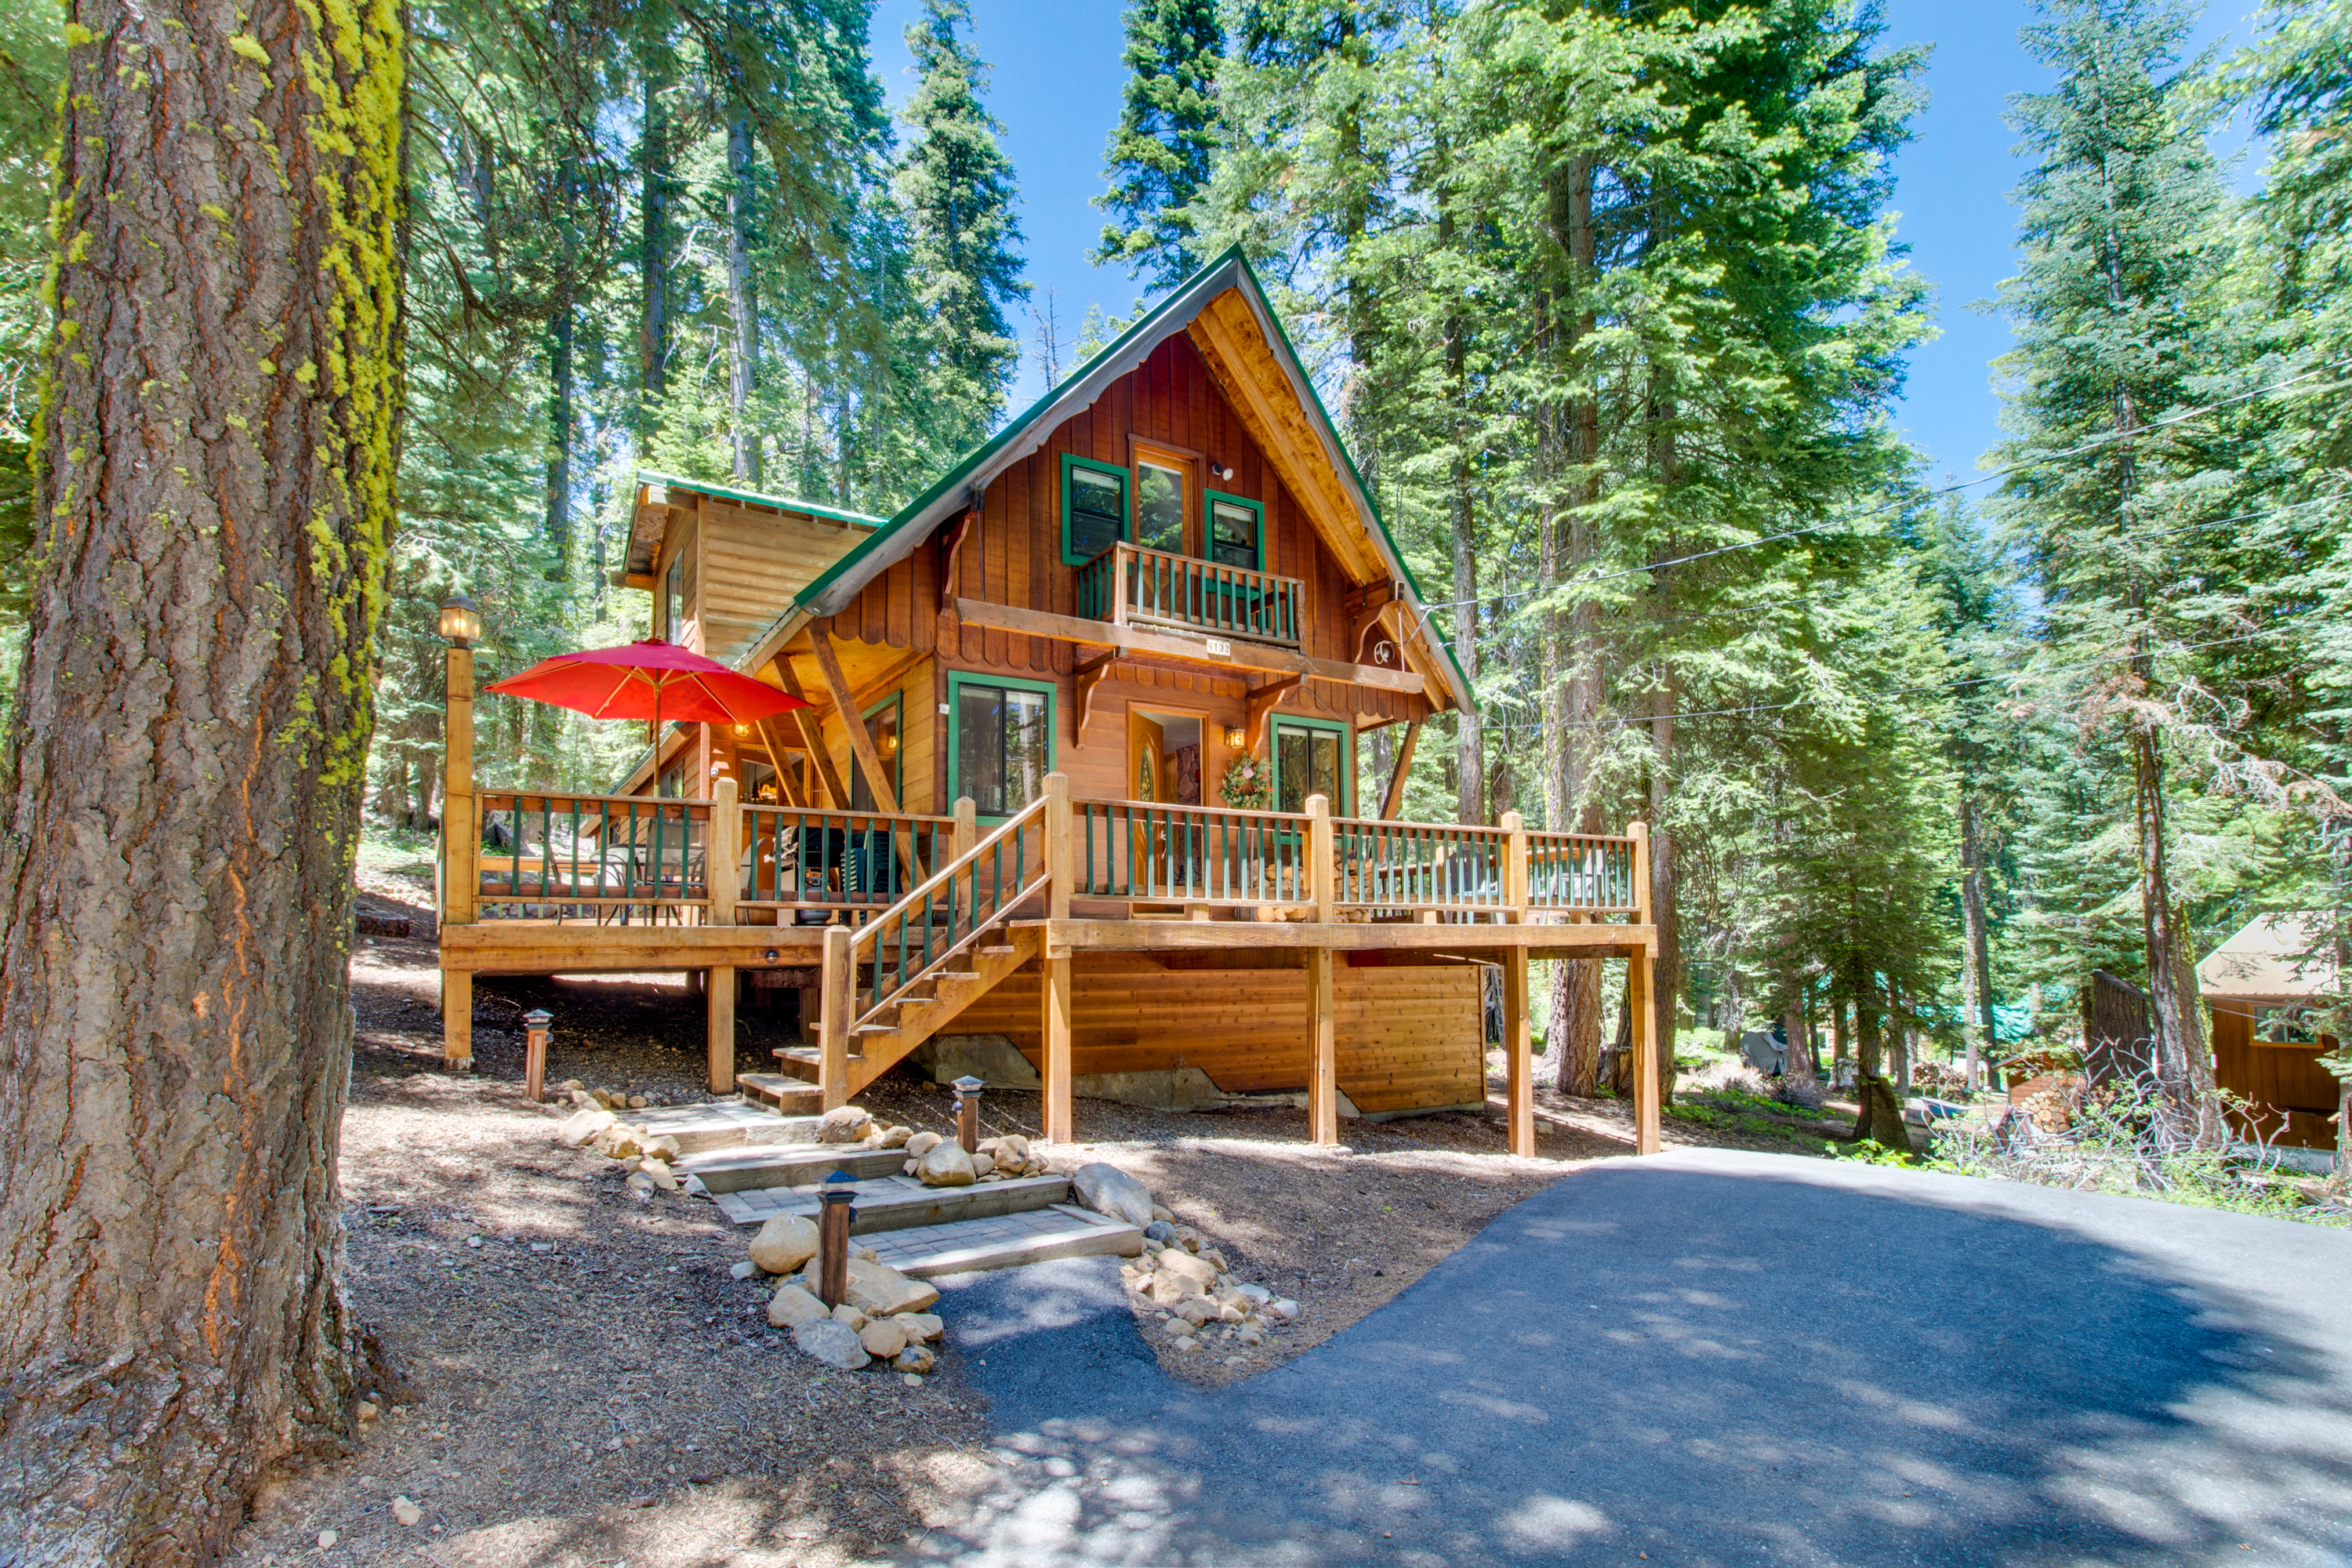 t friendly north lake pet rentl south hot tahoe shore tub stte for with thoe rentals vction getwy memorble rent lke cabin rental cabins in